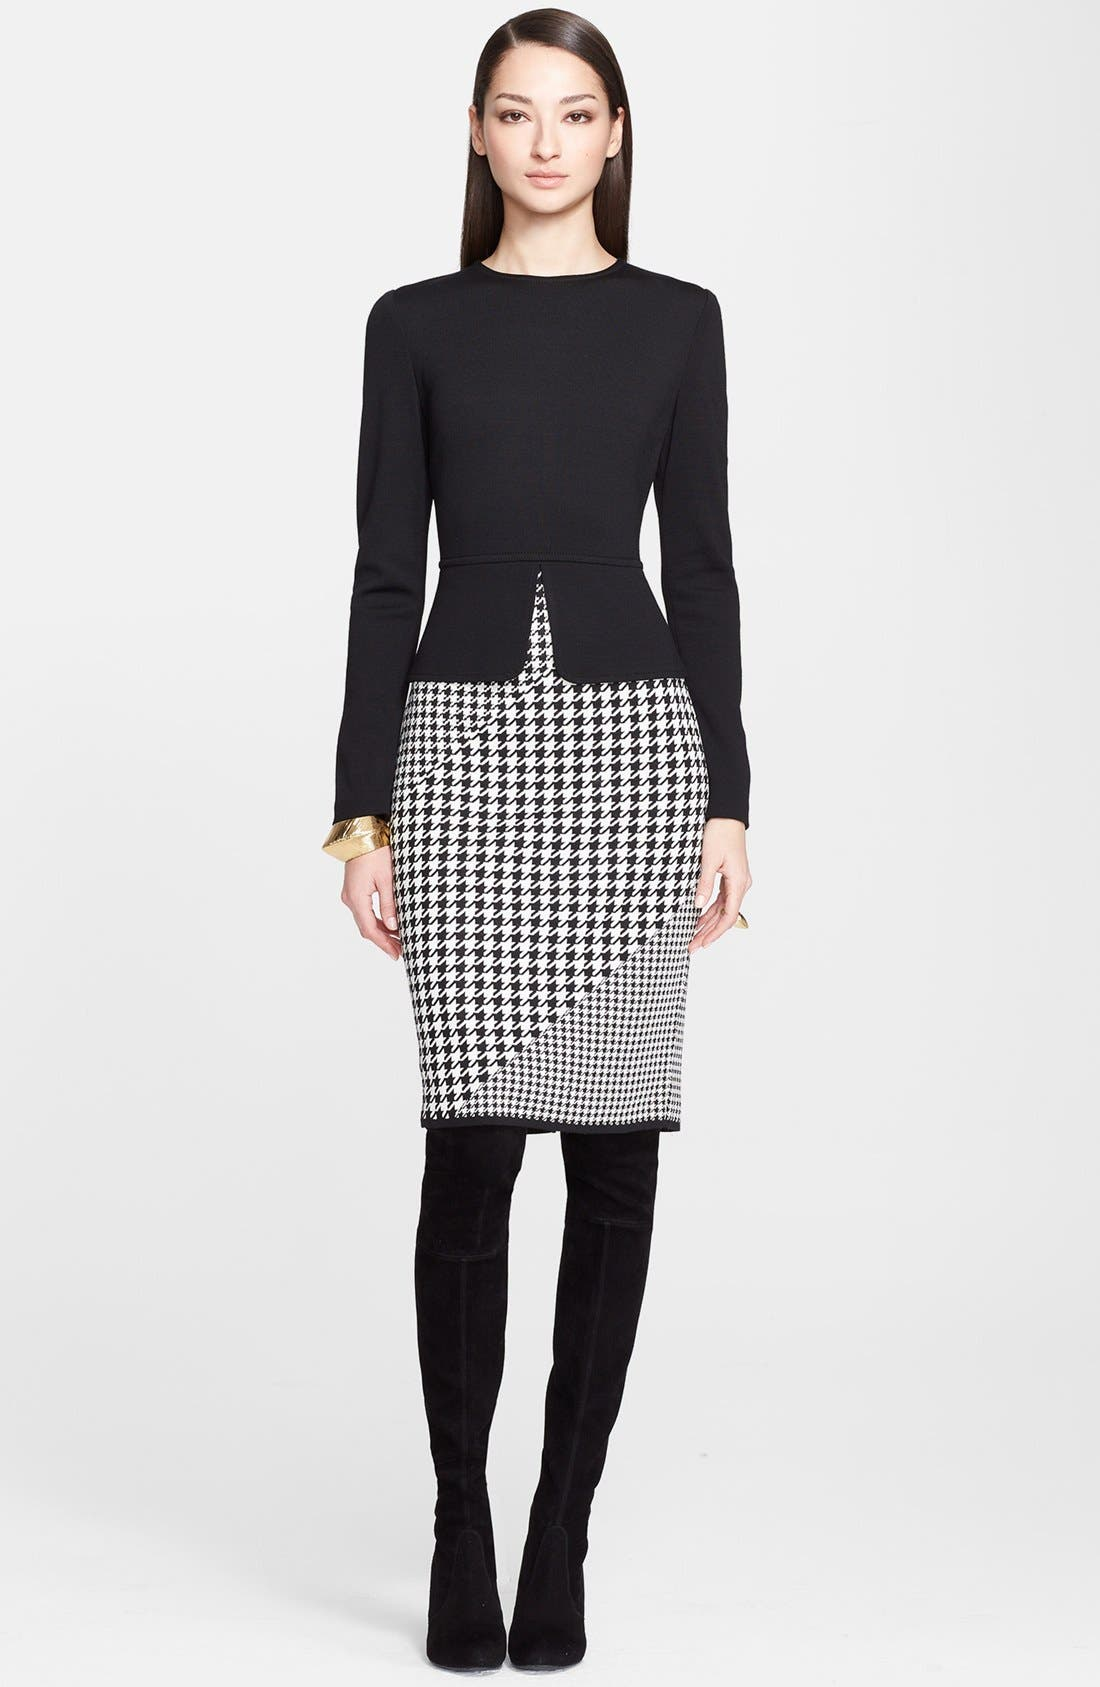 Alternate Image 1 Selected - St. John Collection Milano Knit Peplum Dress